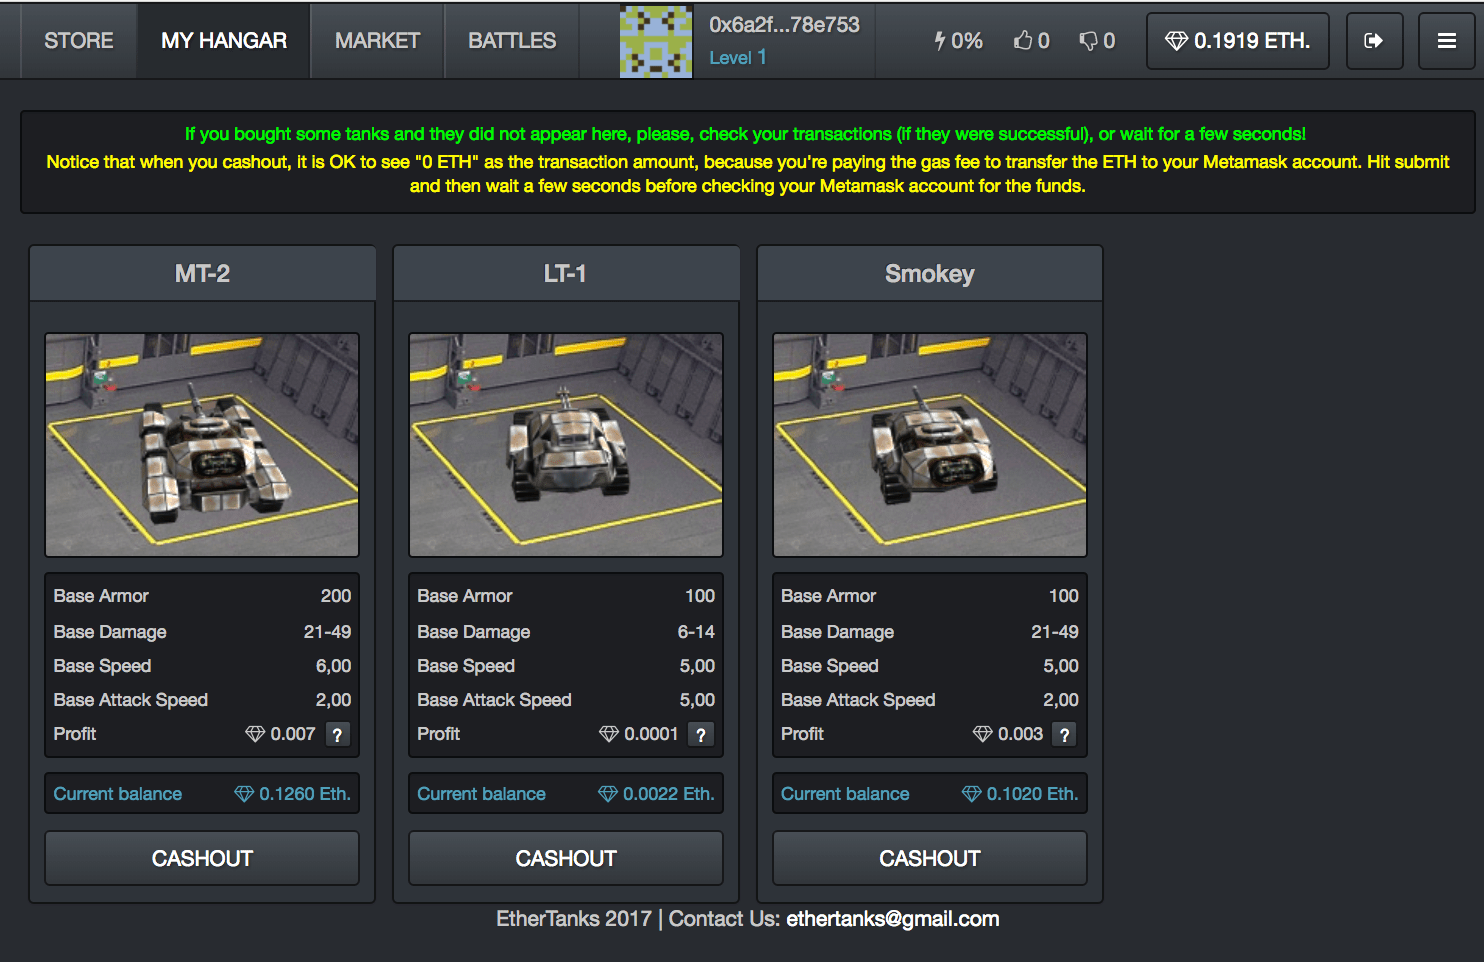 where can I find my tanks on ethertanks?